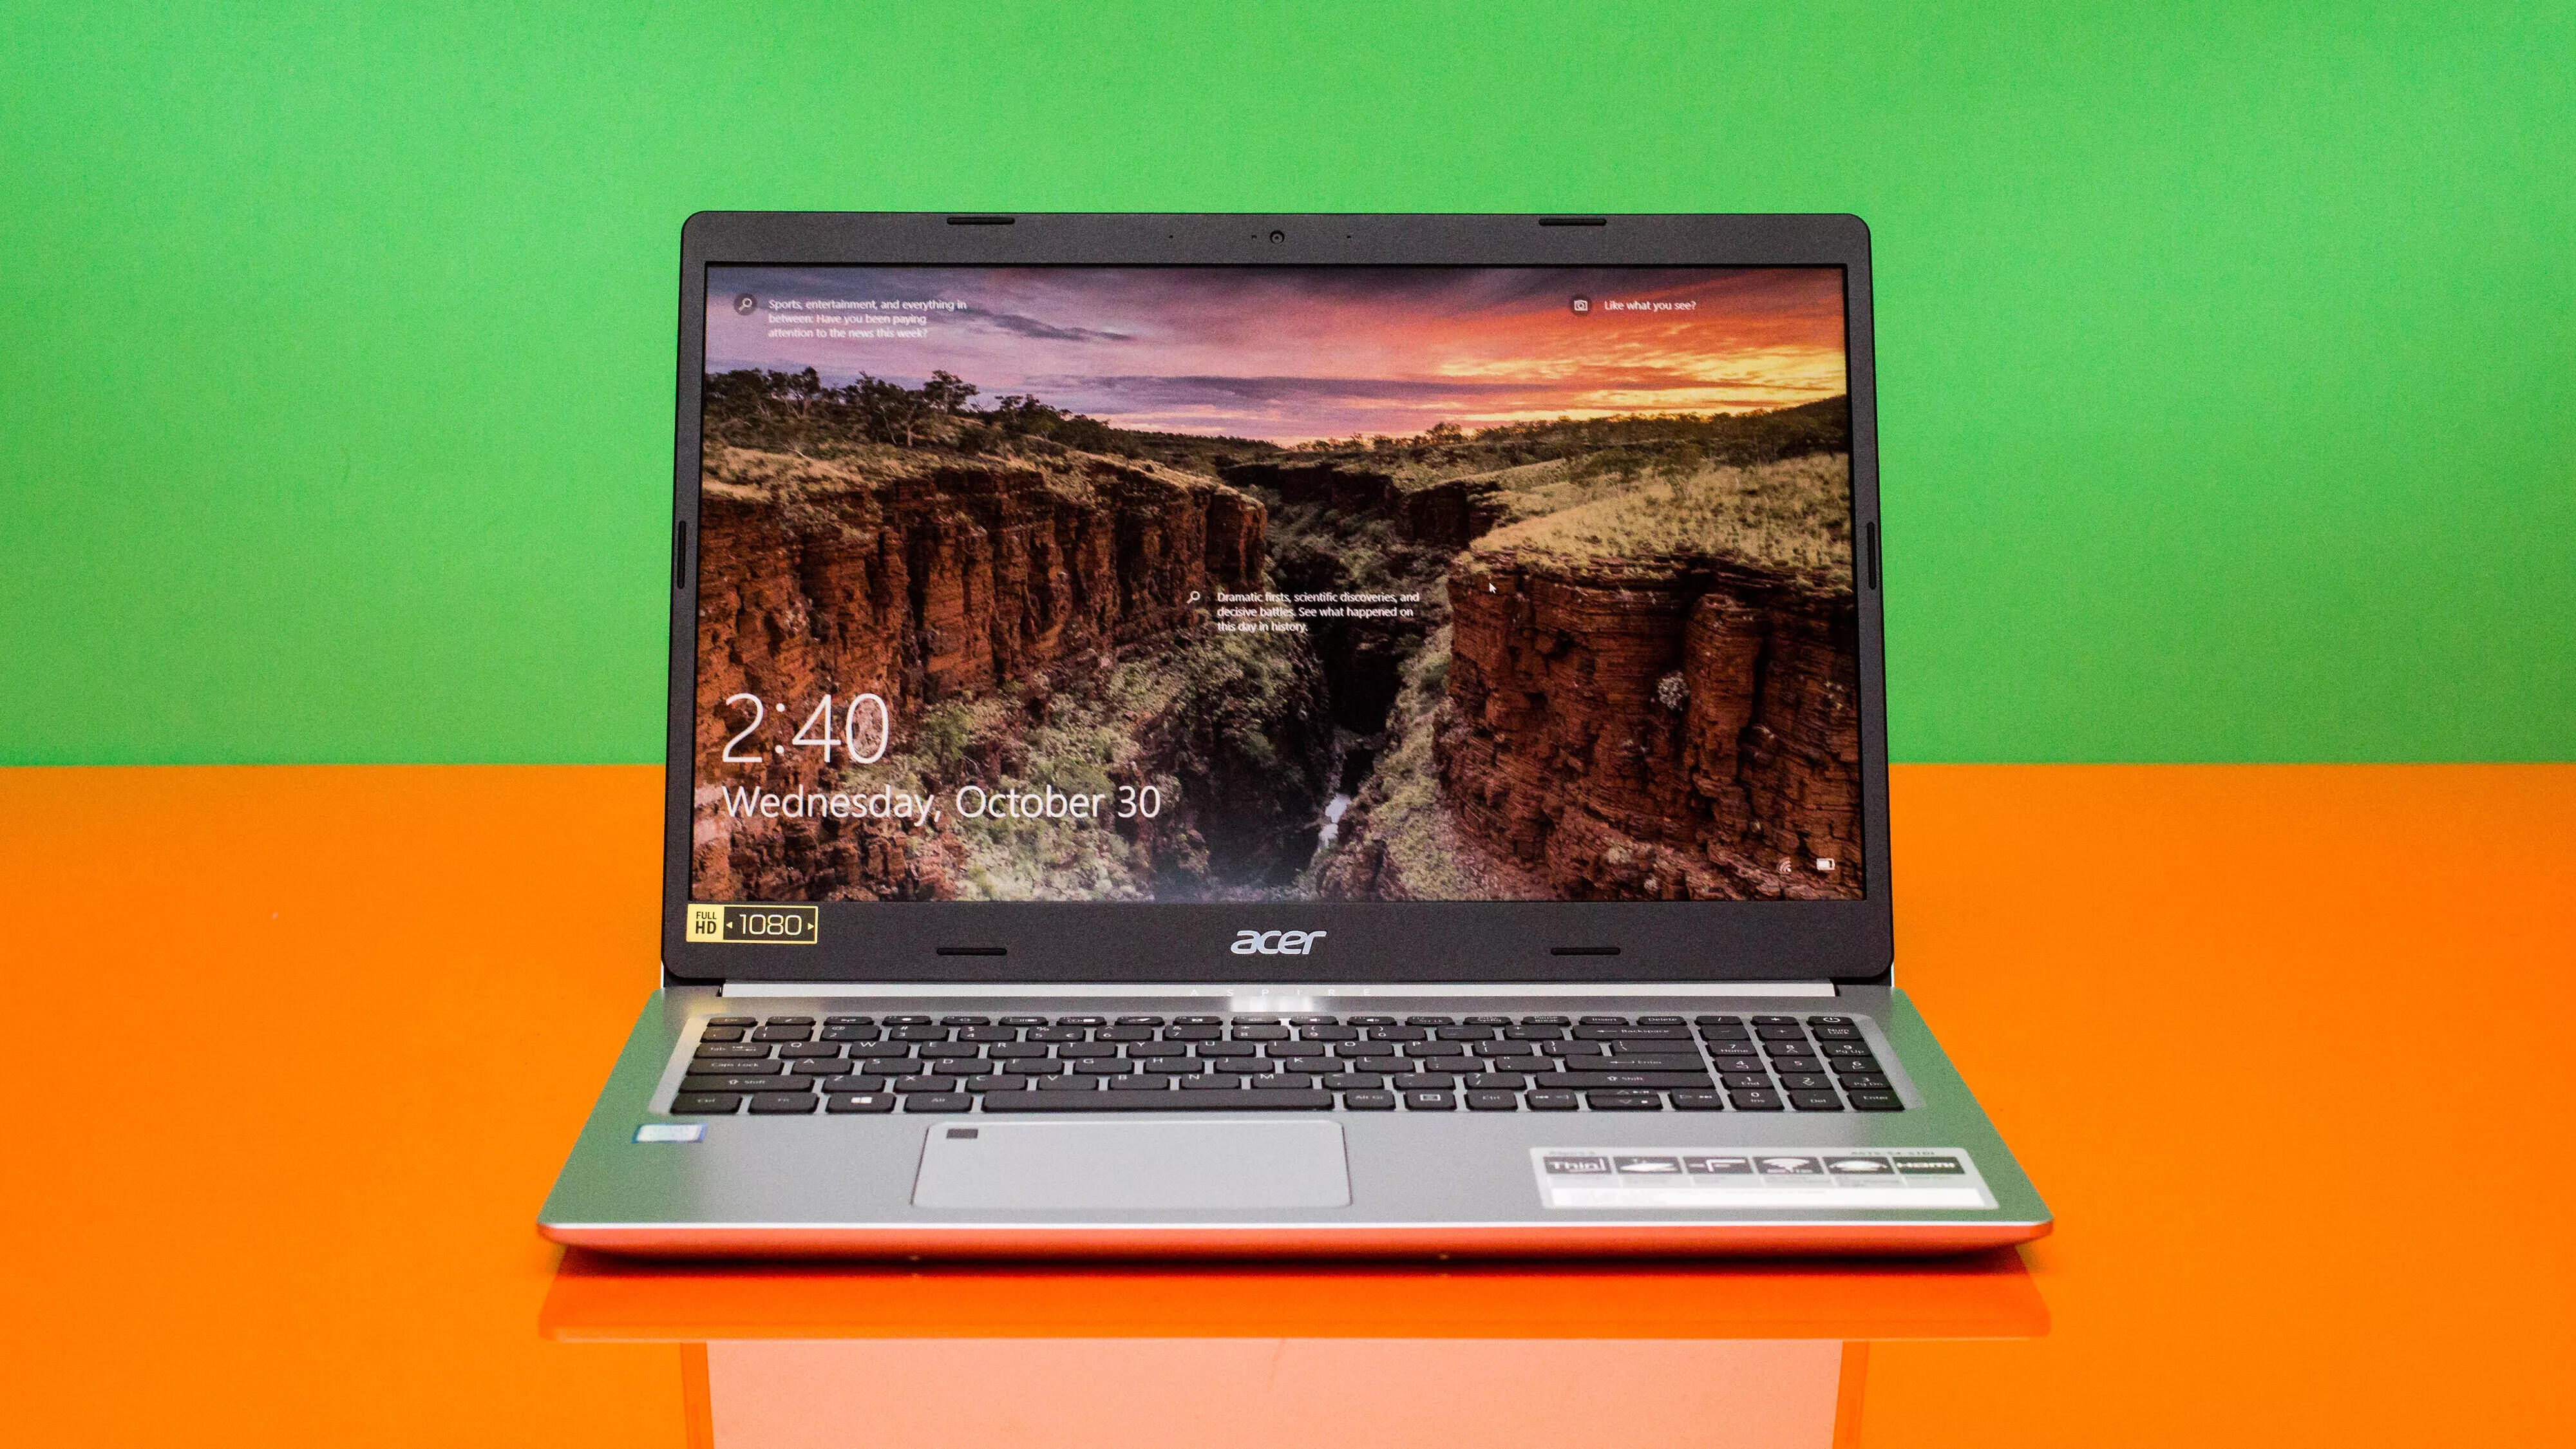 , Newegg has some great laptop deals starting with a Lenovo IdeaPad 5 for $500 – Source CNET Computer News, iBSC Technologies - learning management services, LMS, Wordpress, CMS, Moodle, IT, Email, Web Hosting, Cloud Server,Cloud Computing